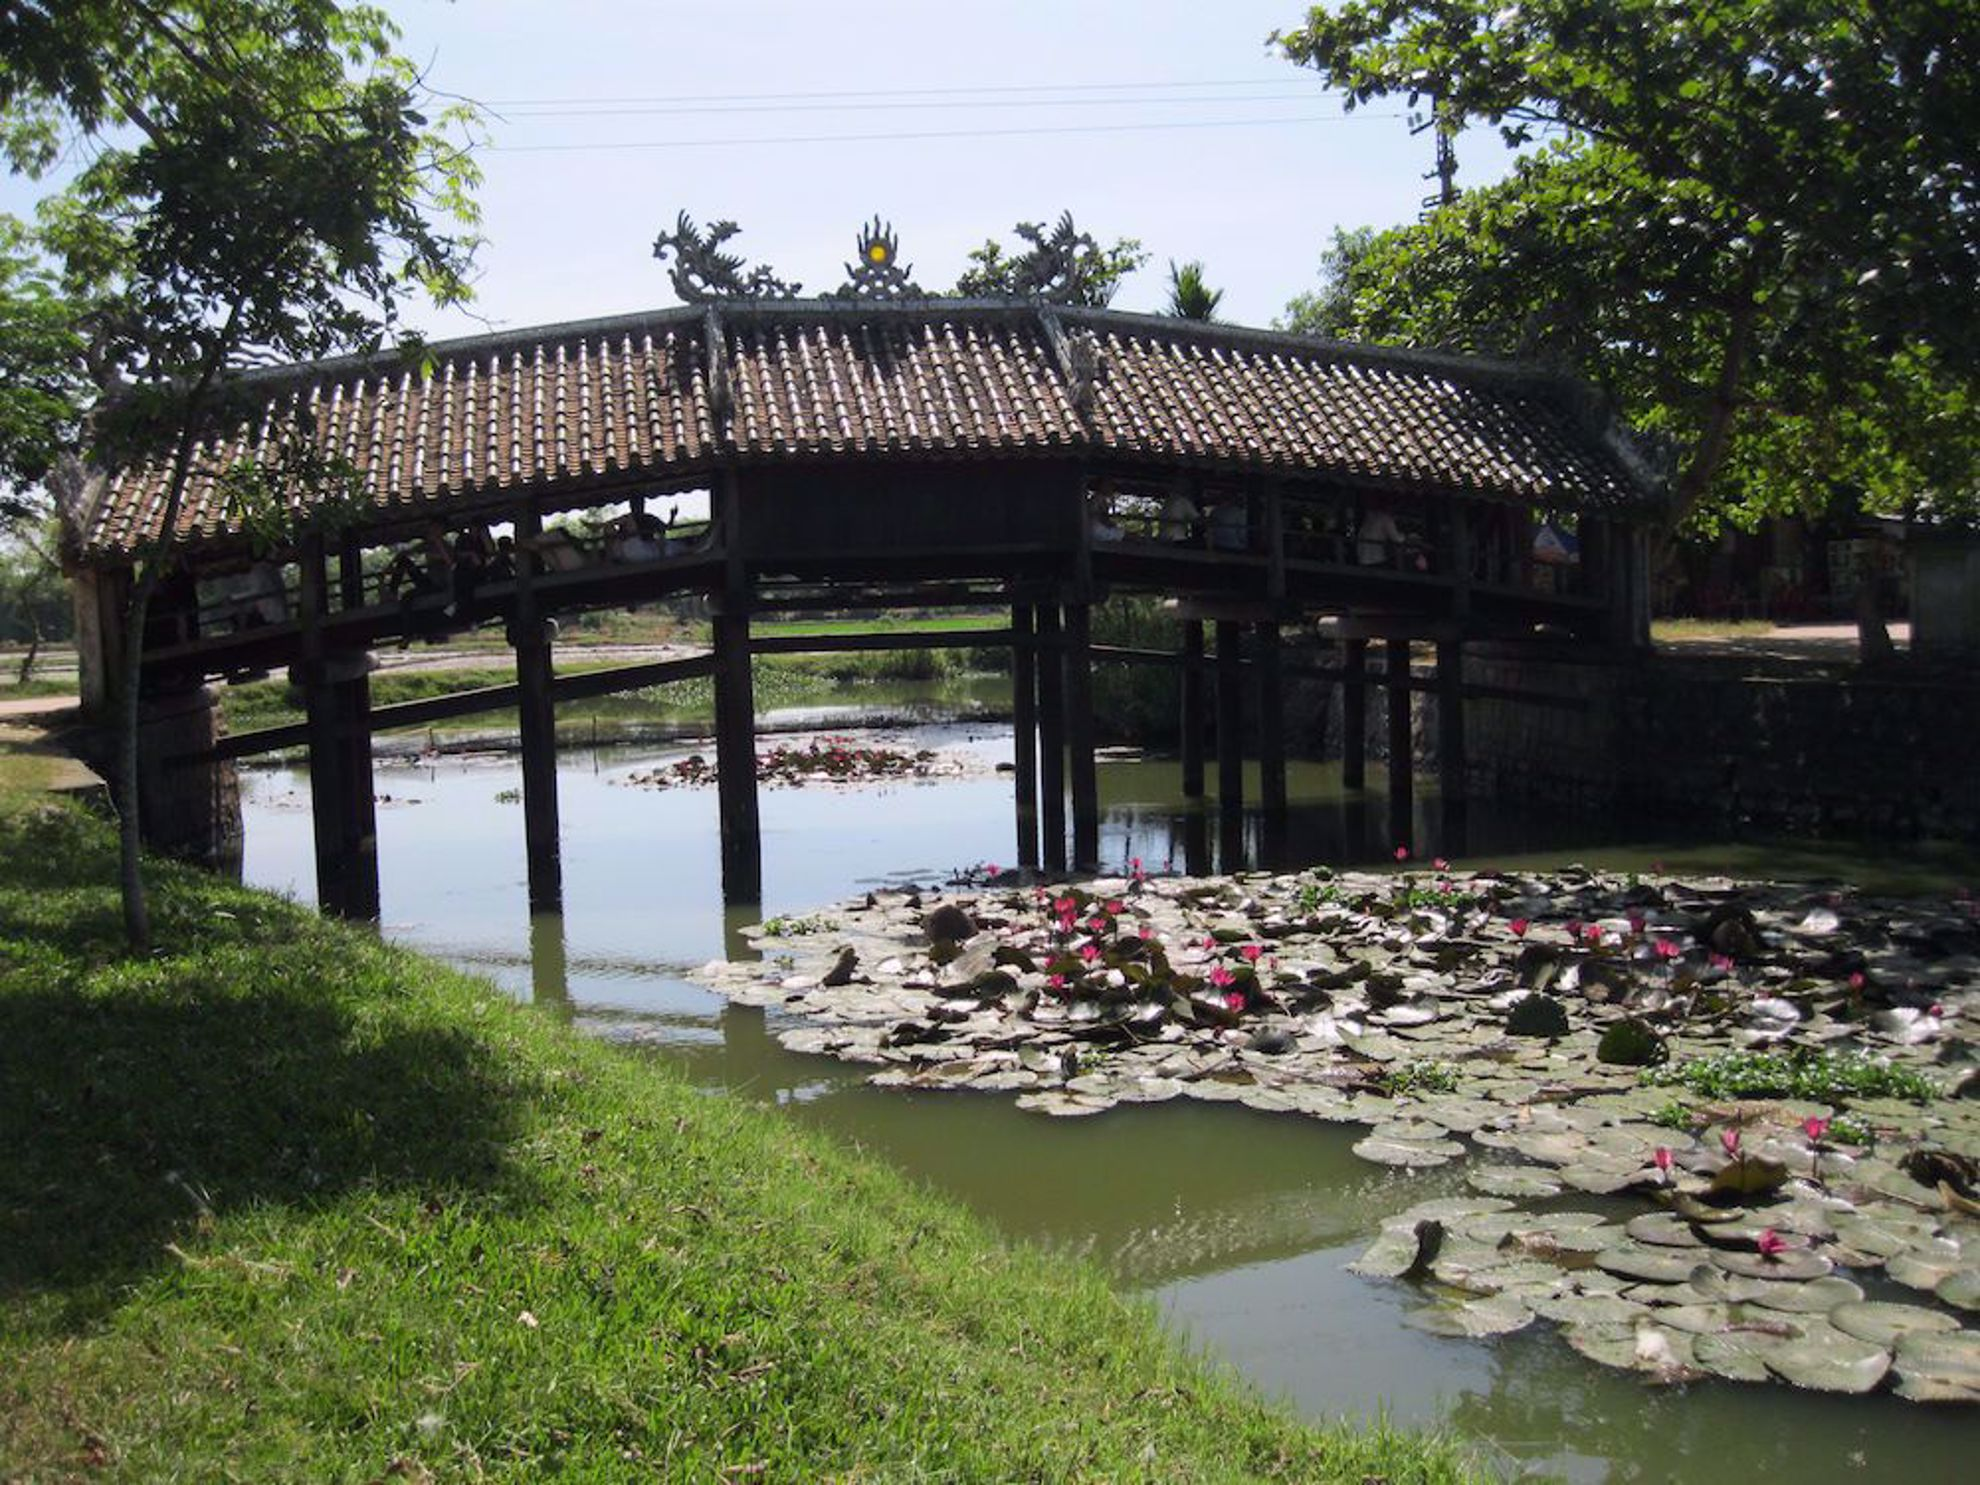 Hue bridge at Thanh Toan Vietnam